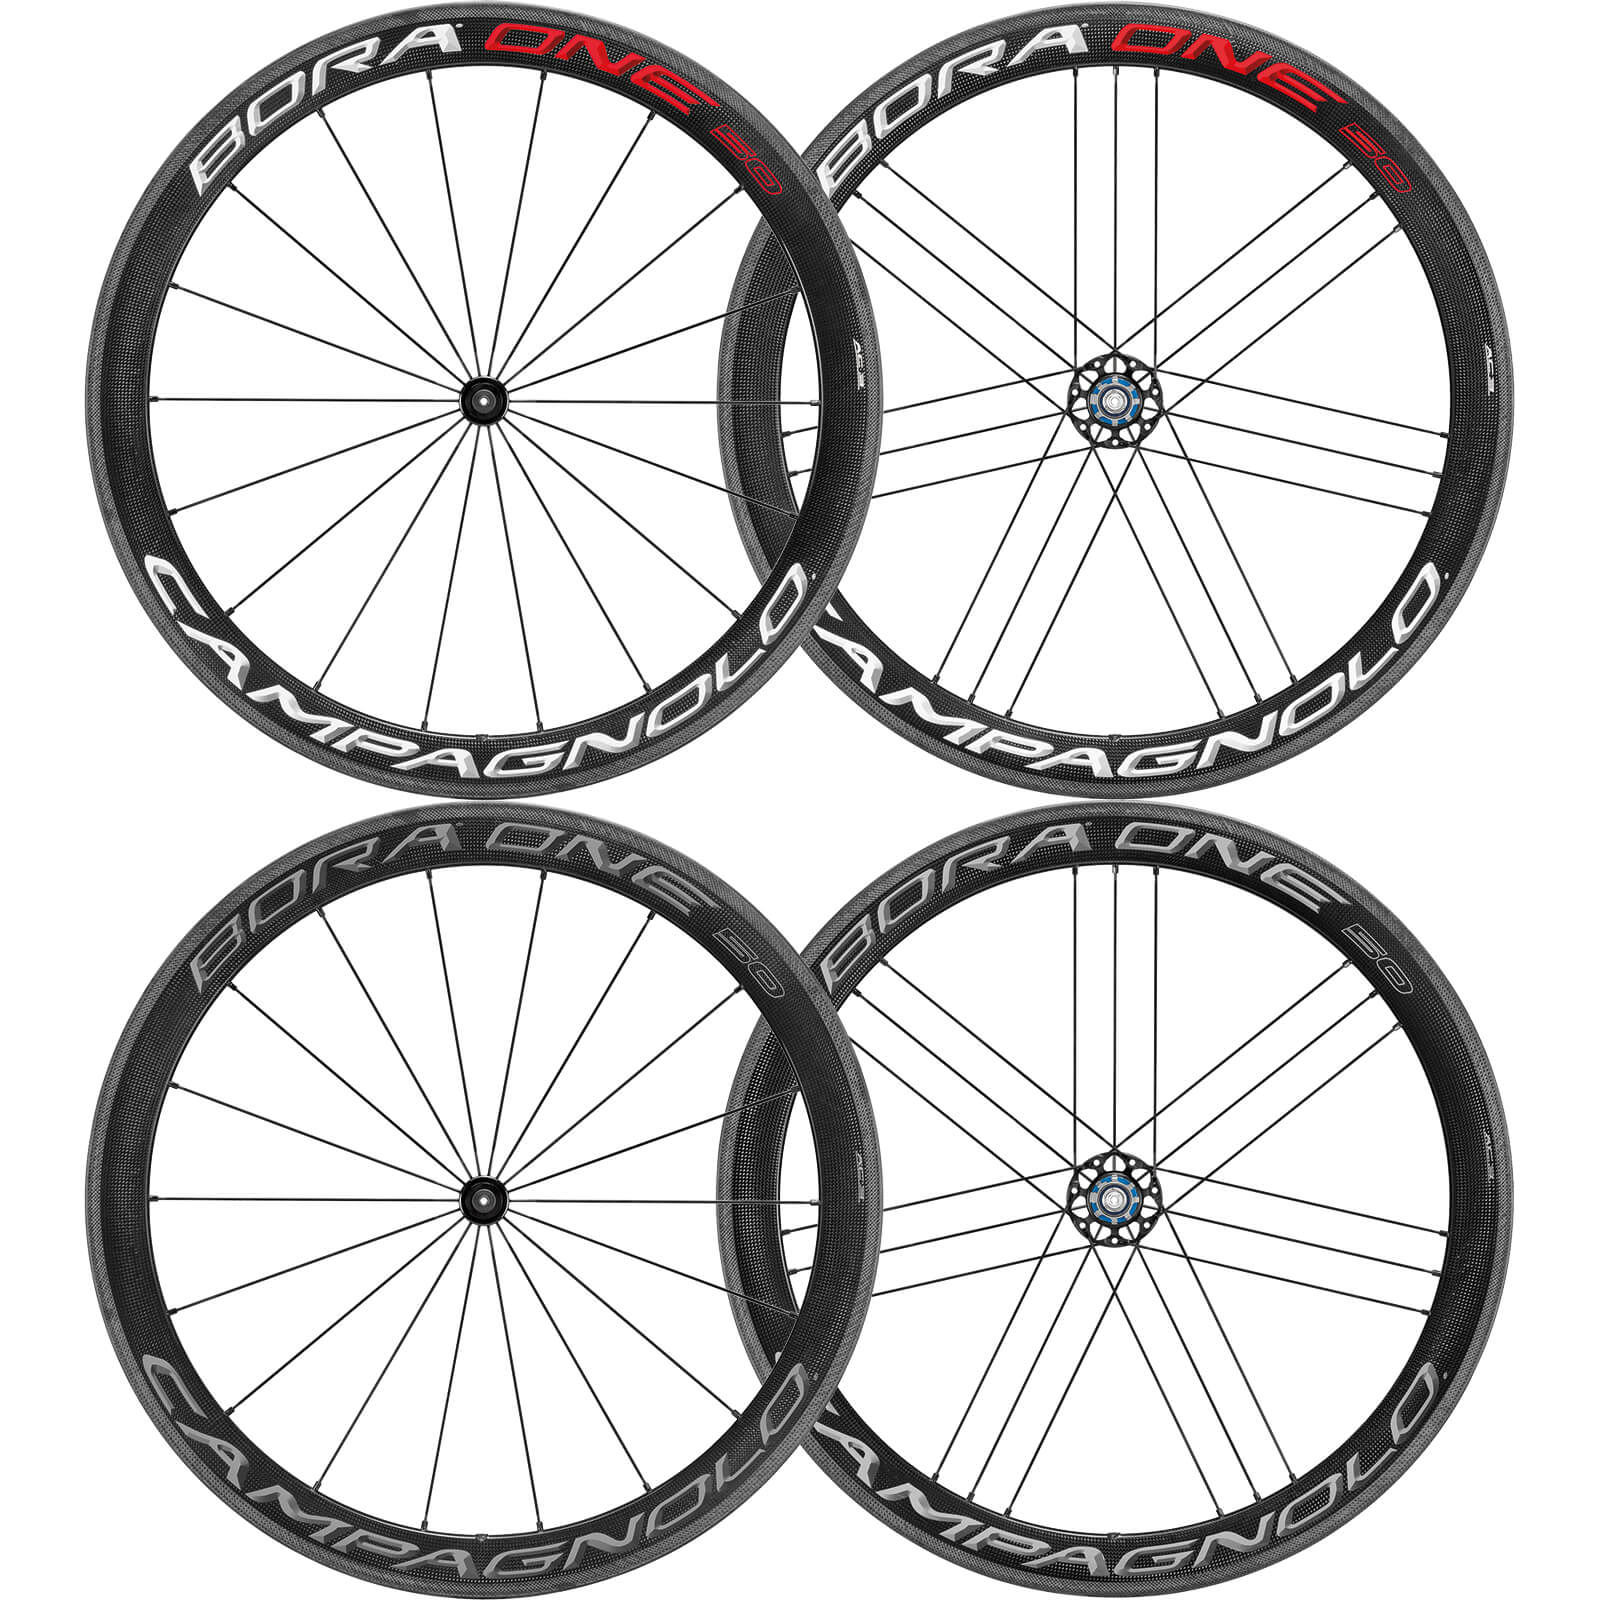 CAMPAGNOLO BORA ONE 50 クリンチャー ホイールセット 2018